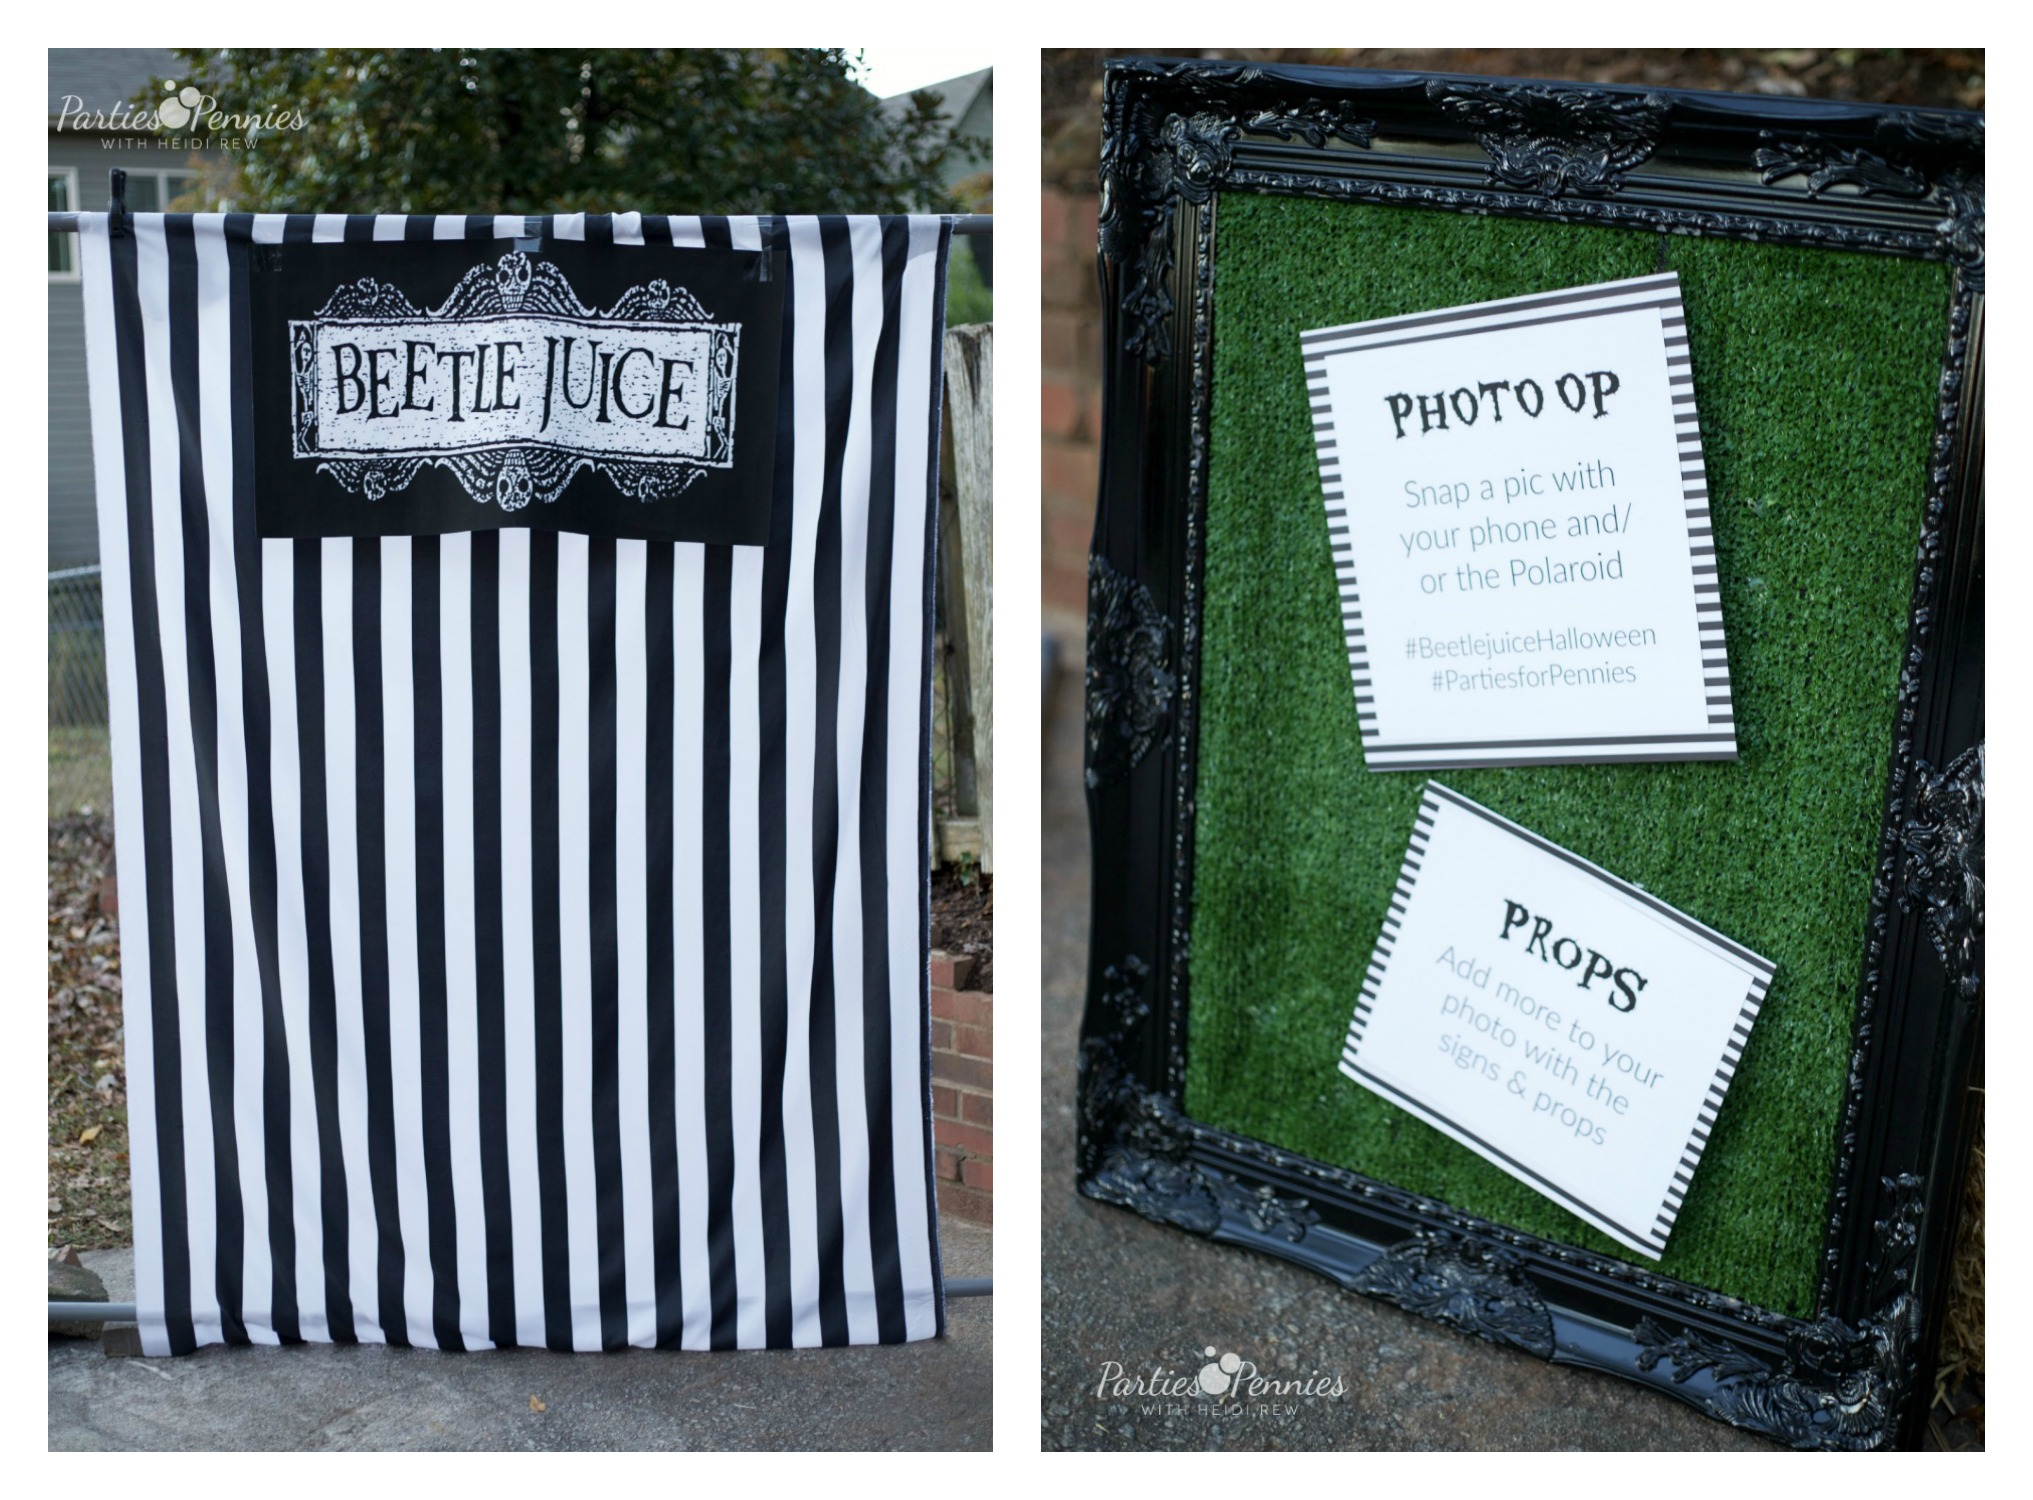 Beetlejuice Party Parties For Pennies